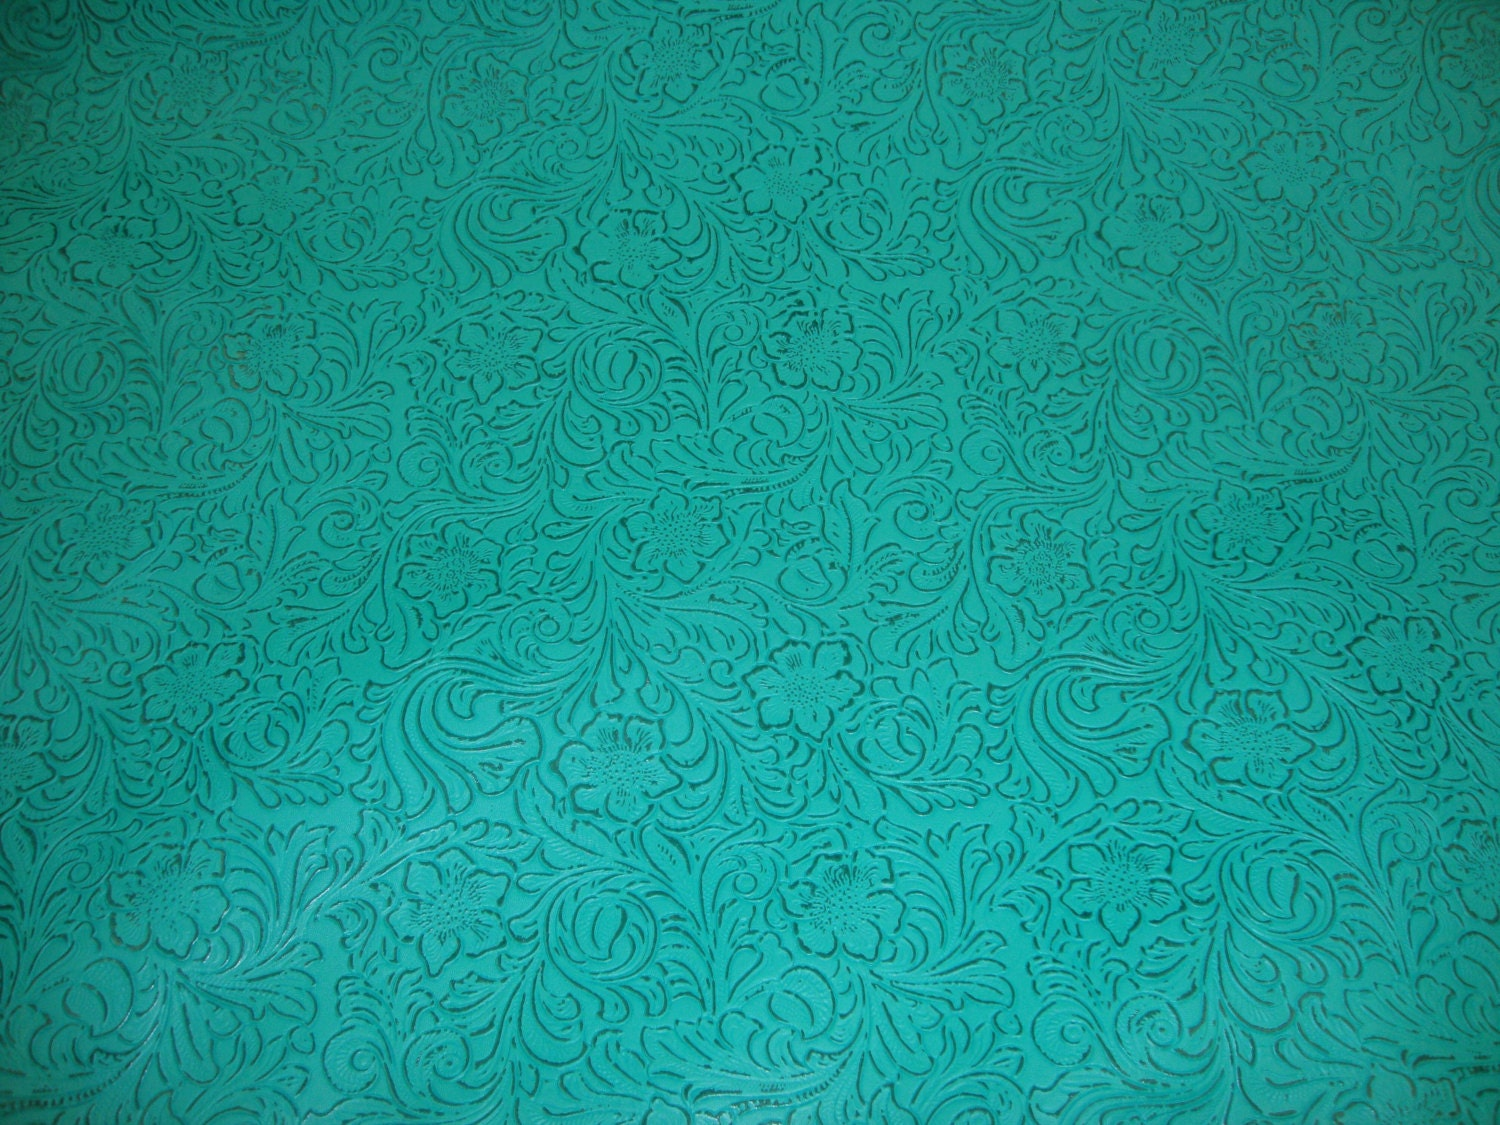 Turquoise Laredo Embossed Floral Faux Leather Vinyl Upholstery